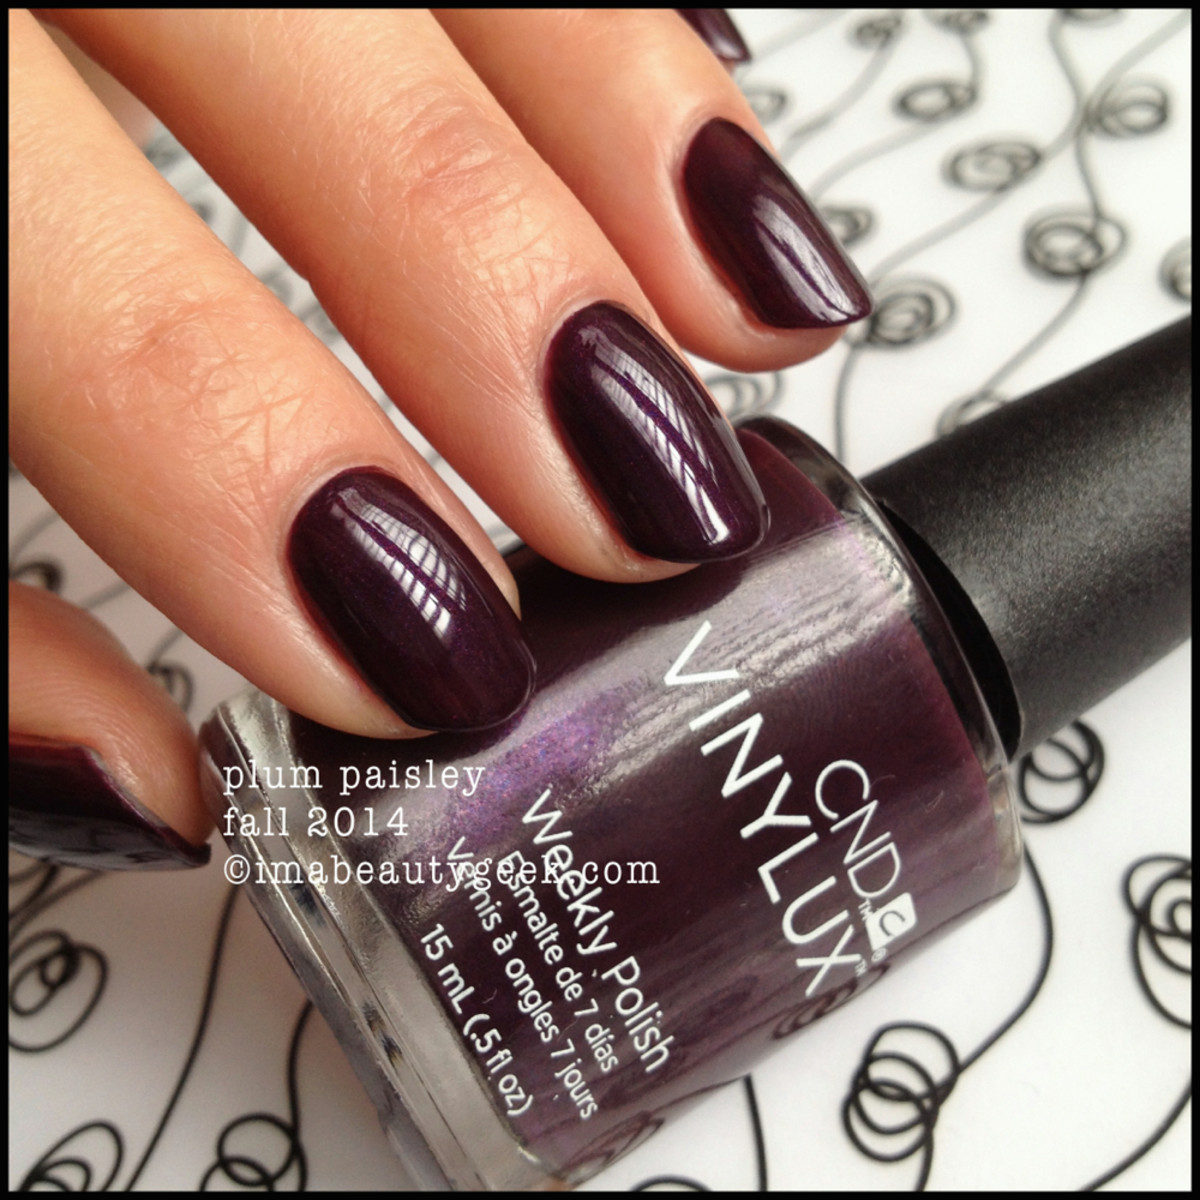 CND Vinylux Plum Paisley Modern Folklore Fall 2014